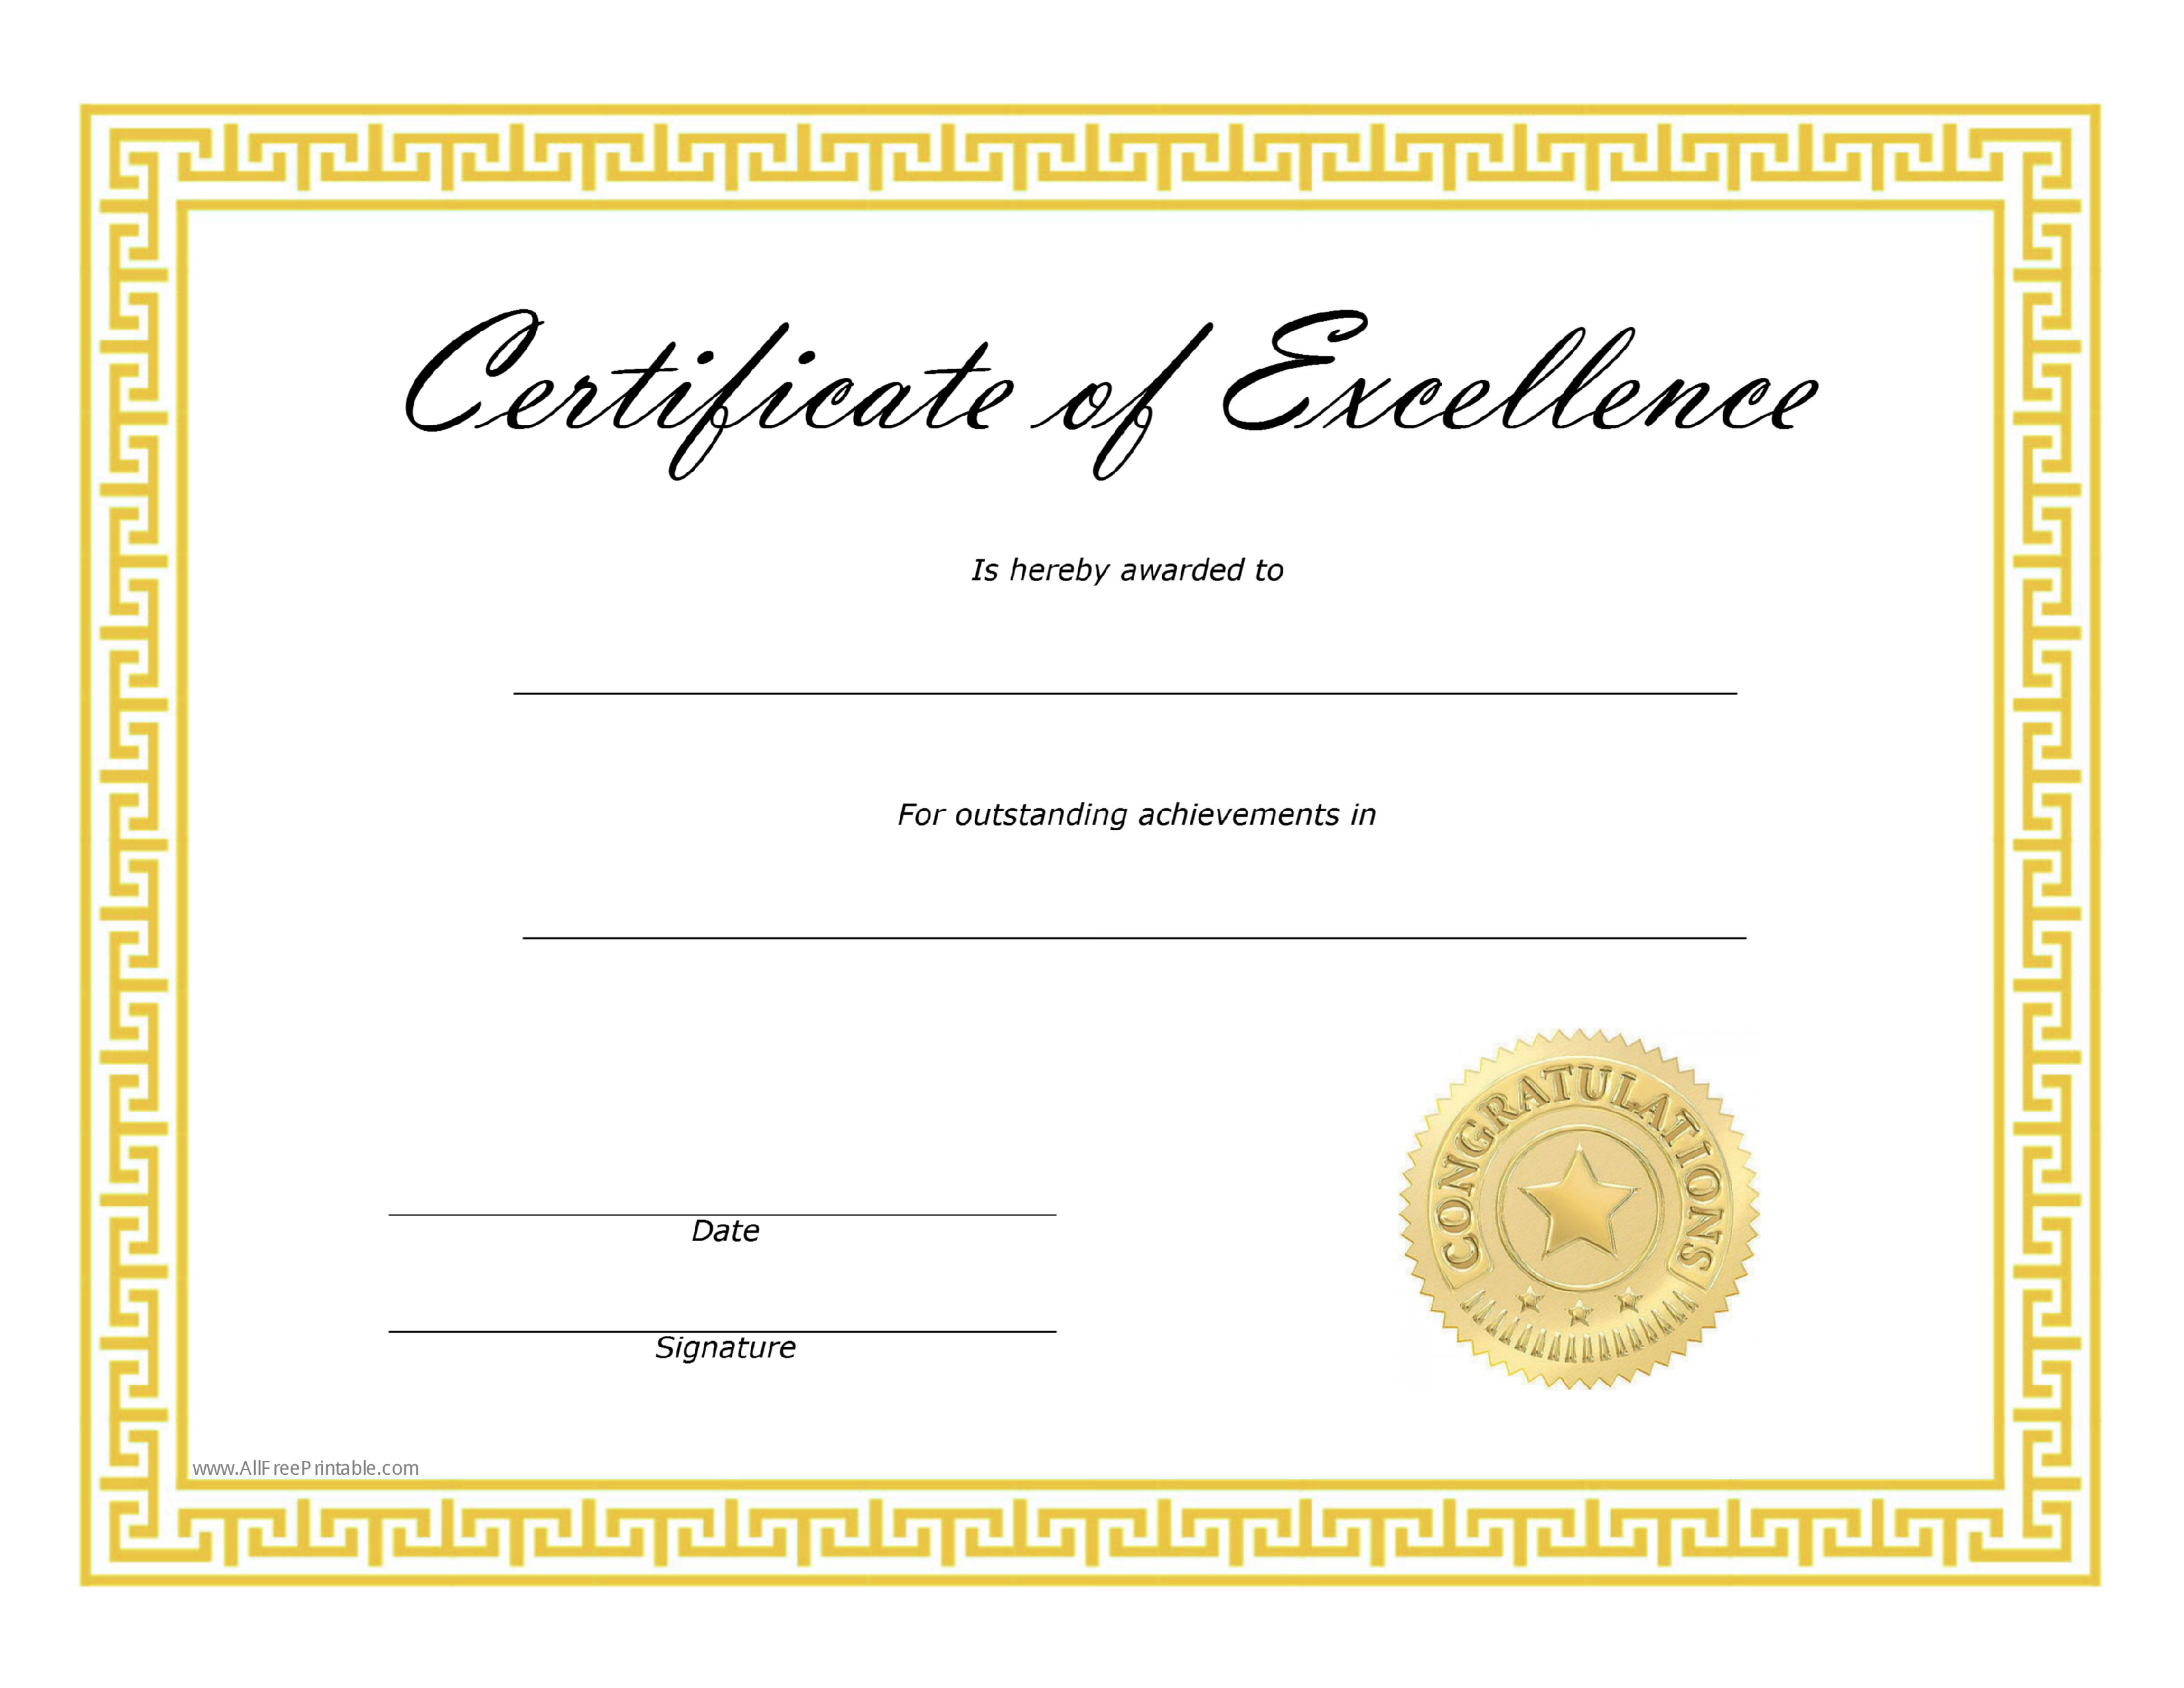 Free certificate of excellence templates at for Certification document template